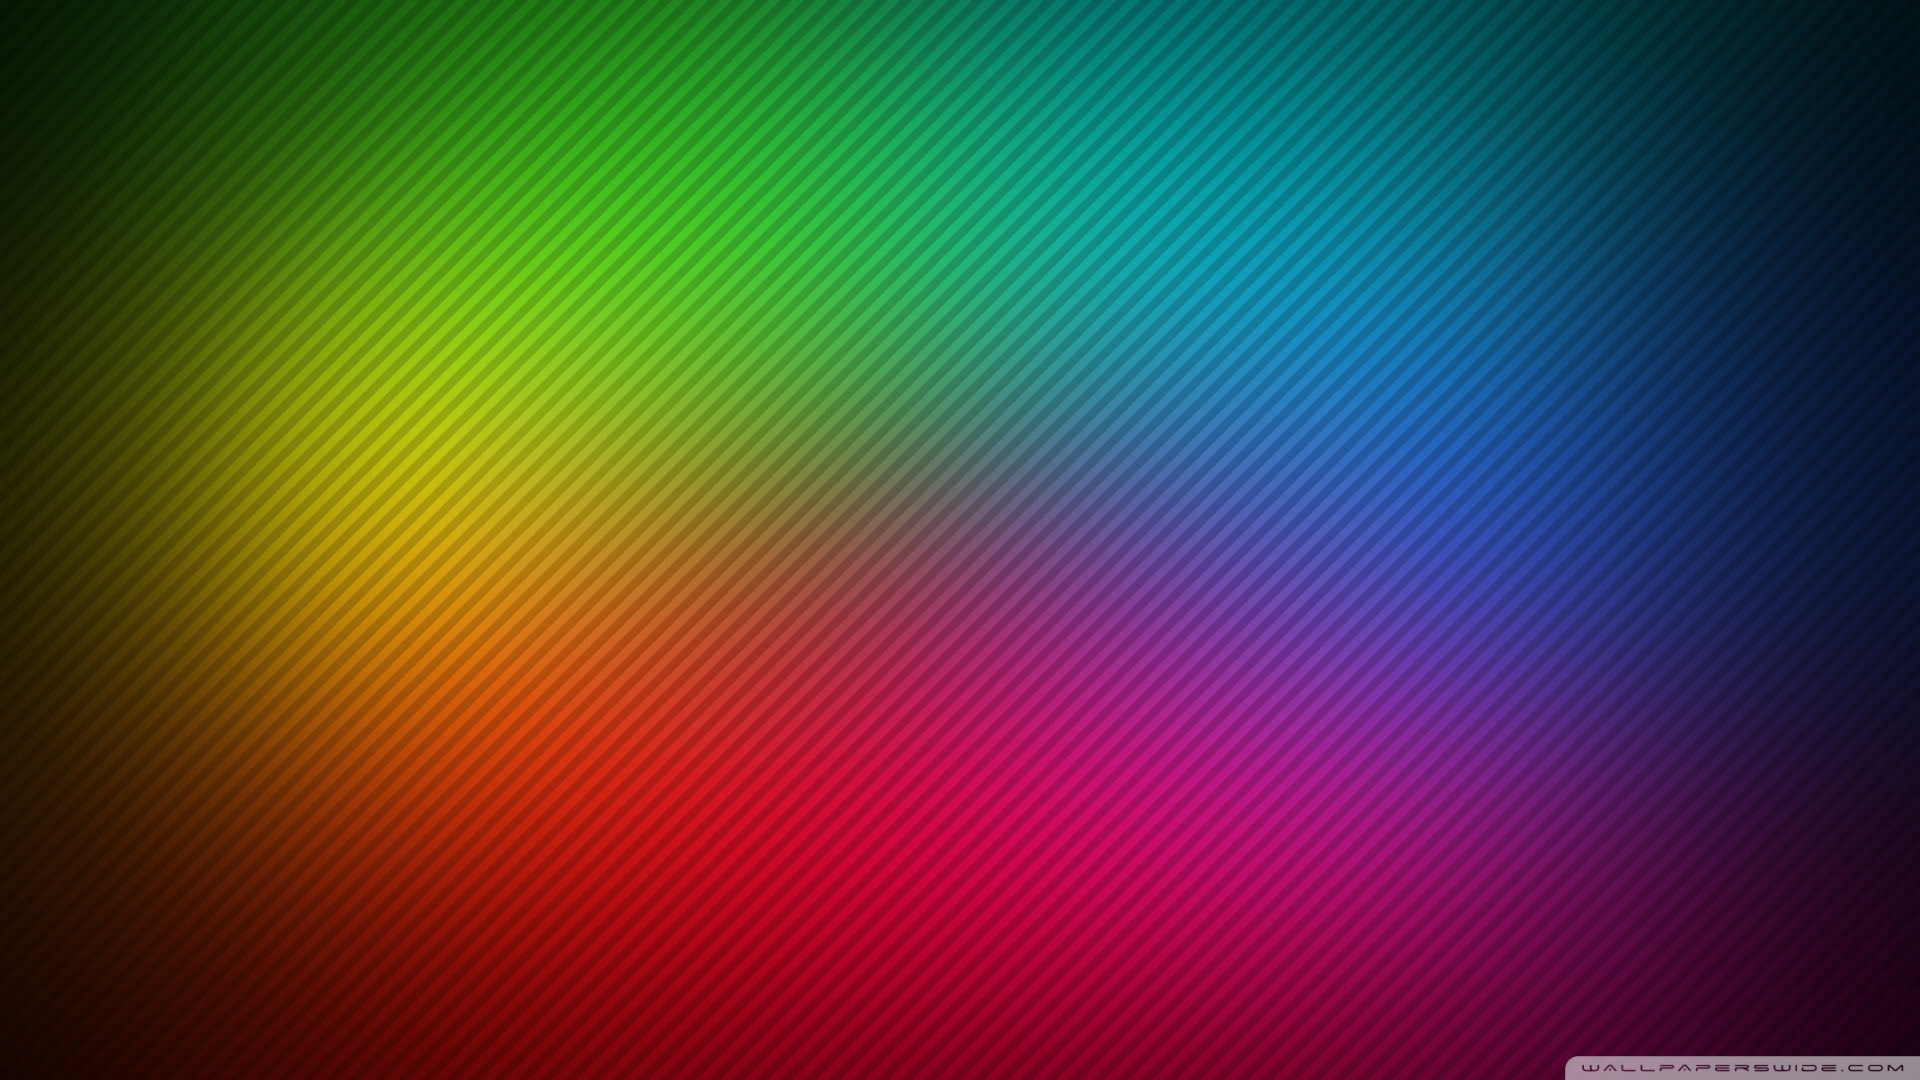 Hd wallpaper colour - Rainbow Colors Wallpaper 942928